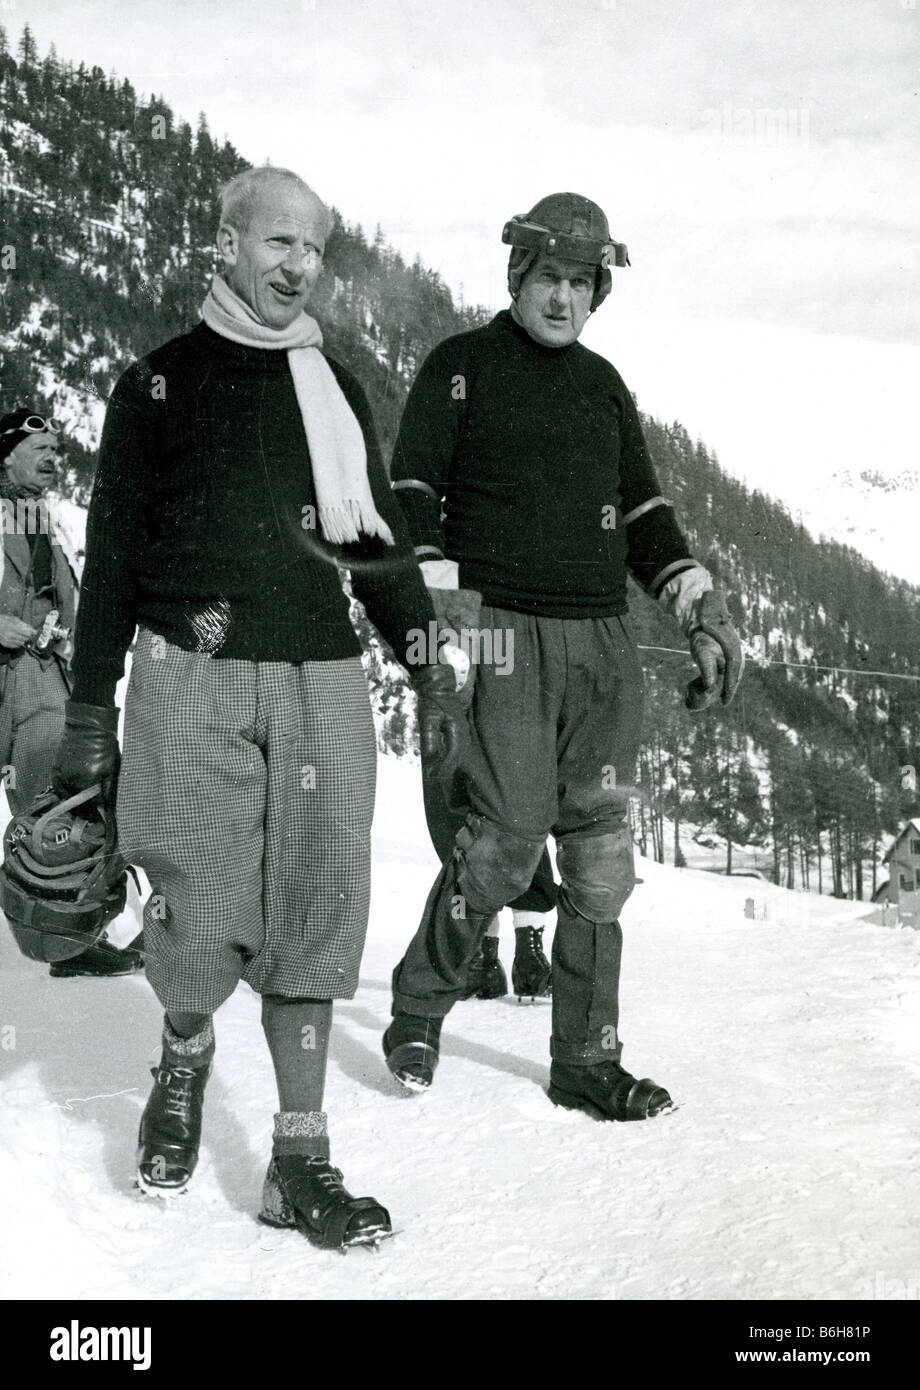 JOHN MOORE-BRABAZON at right and Jimmie Coats Captain of the British Olympic Team at the Cresta Run - Stock Image